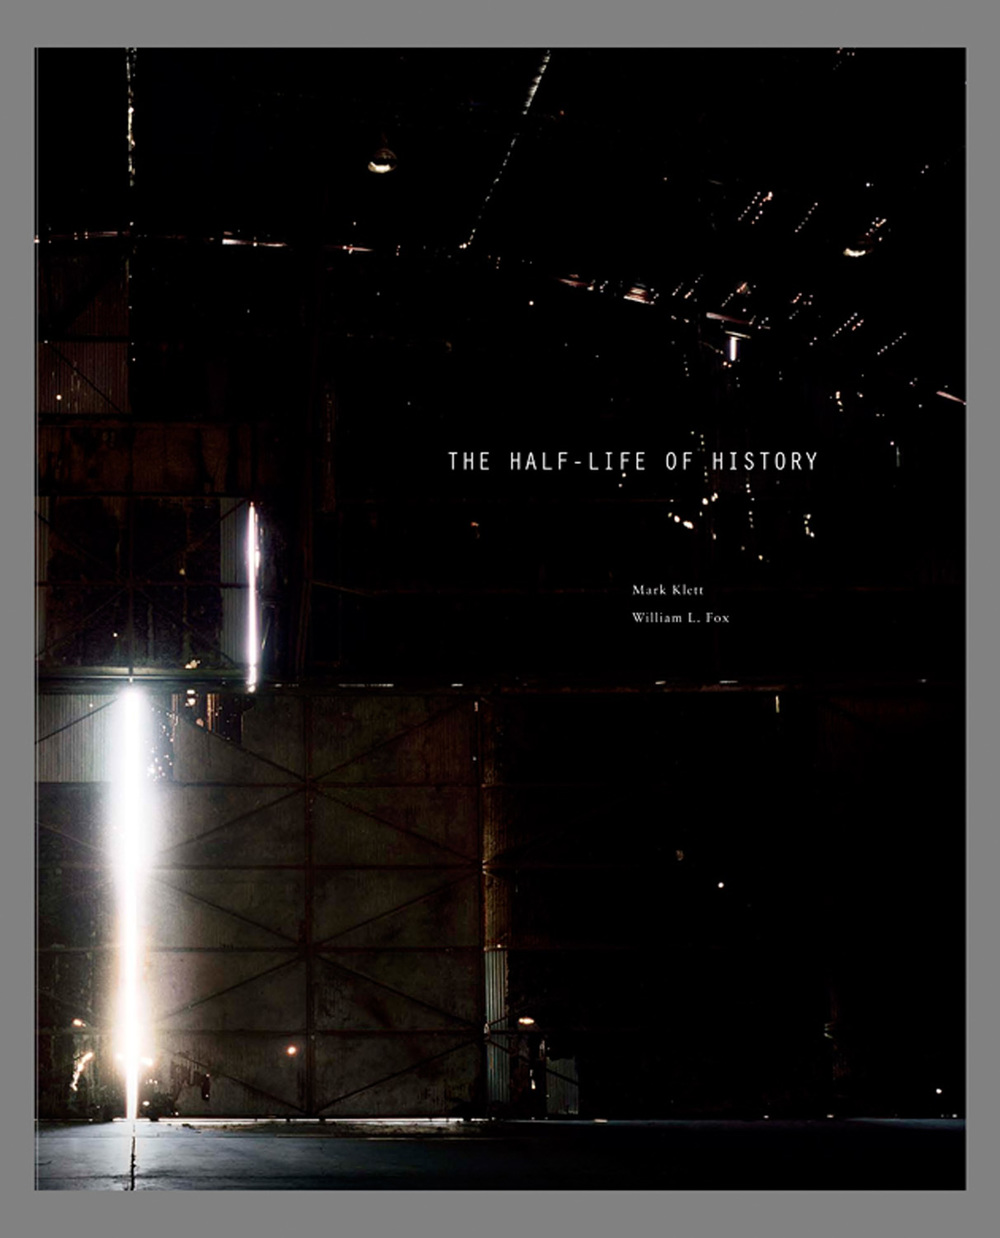 The Half Life of History, with William L Fox, Radius Books 2011